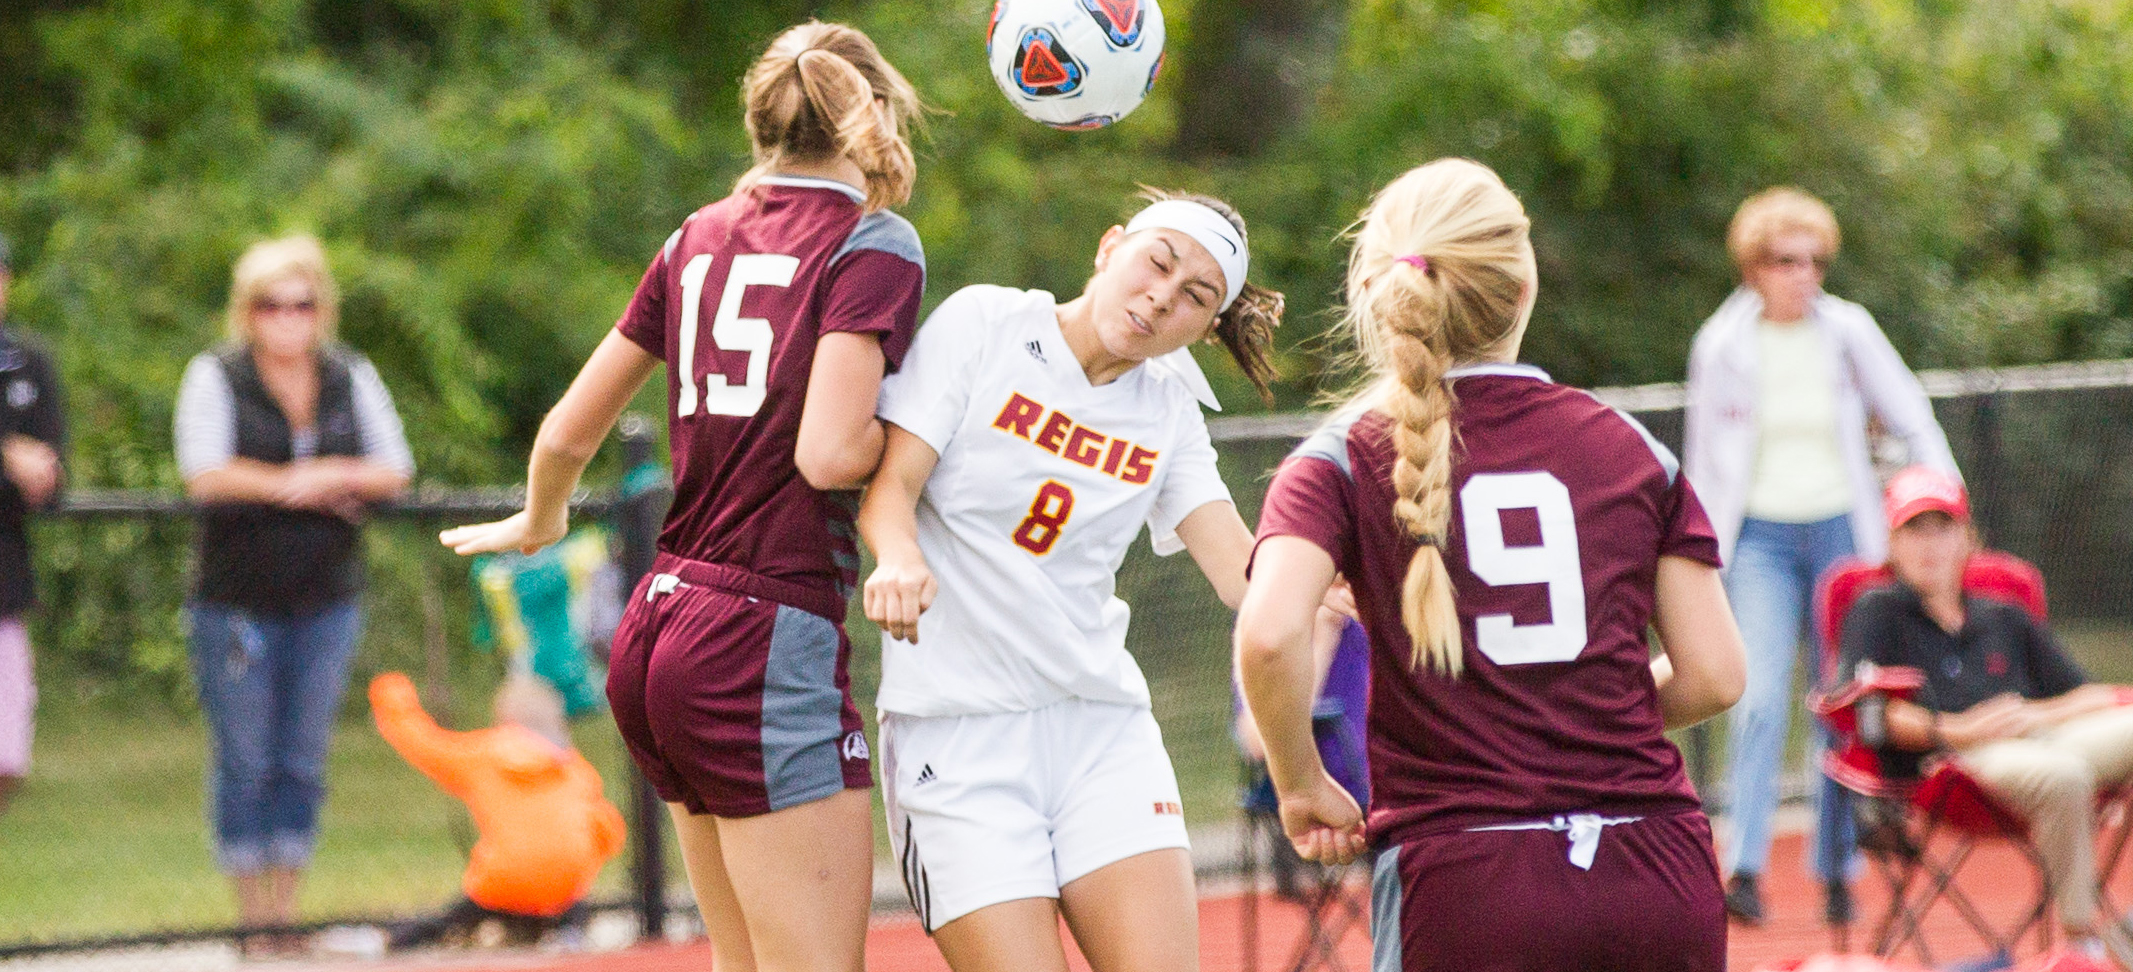 Women's Soccer Plays St. Joseph's (Me.) To 1-1 Draw